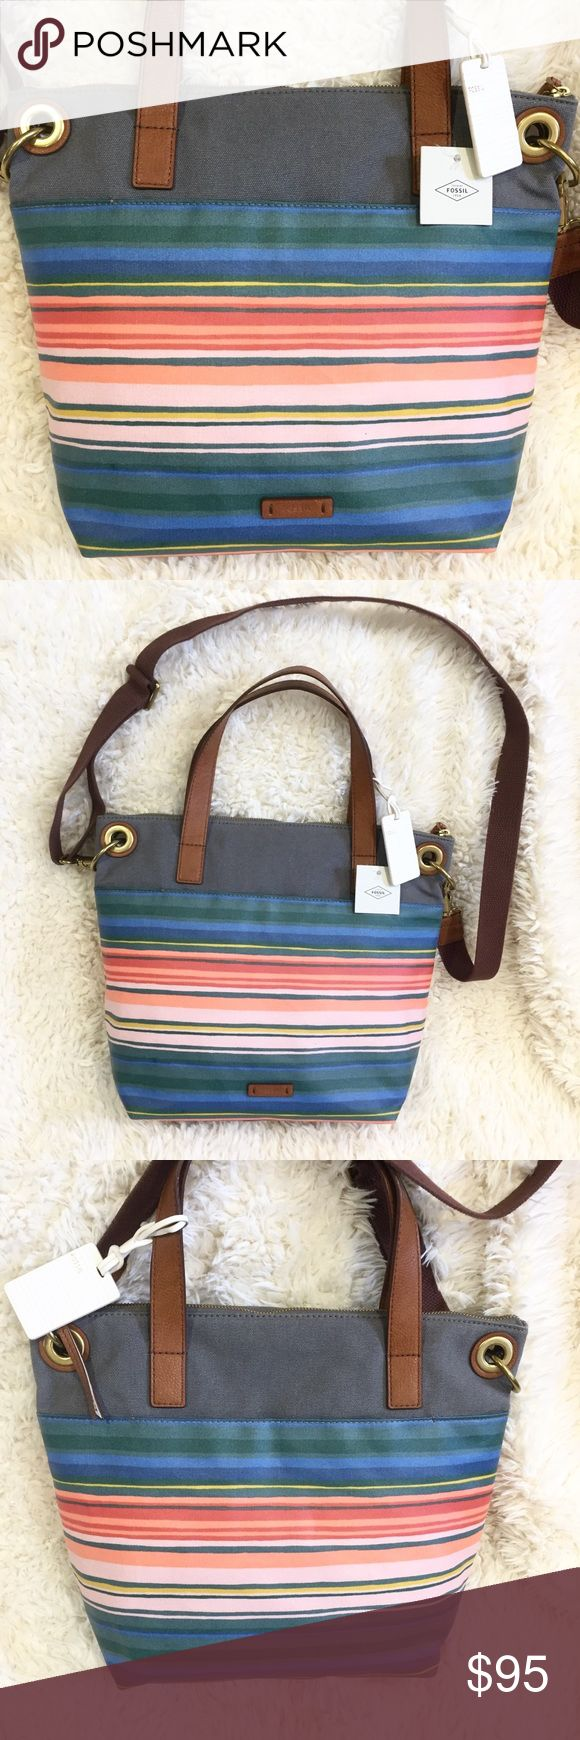 Flag Canvas Wall Art Plaque Nwt My Posh Picks T Fossil Keely Tote Striped Crossbody Coated